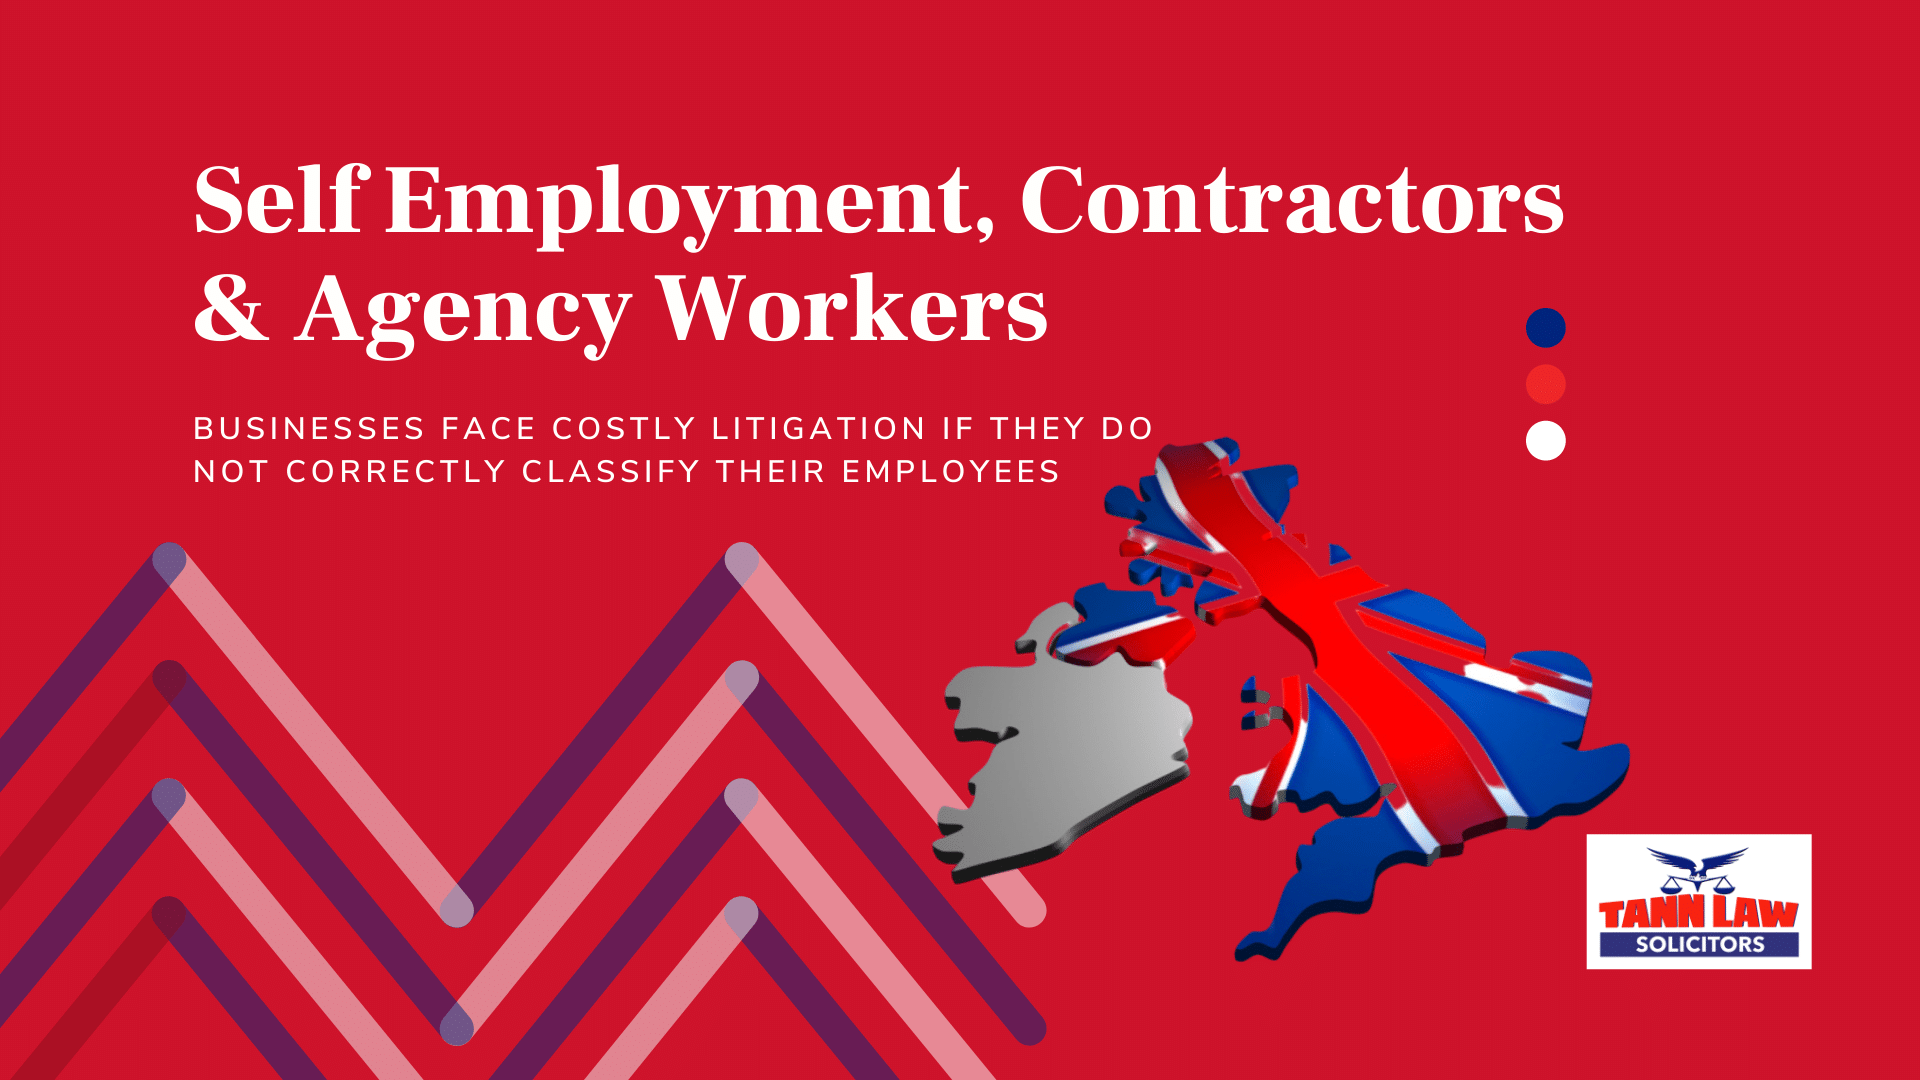 Self Employment, Contractors and Agency Workers - employment status